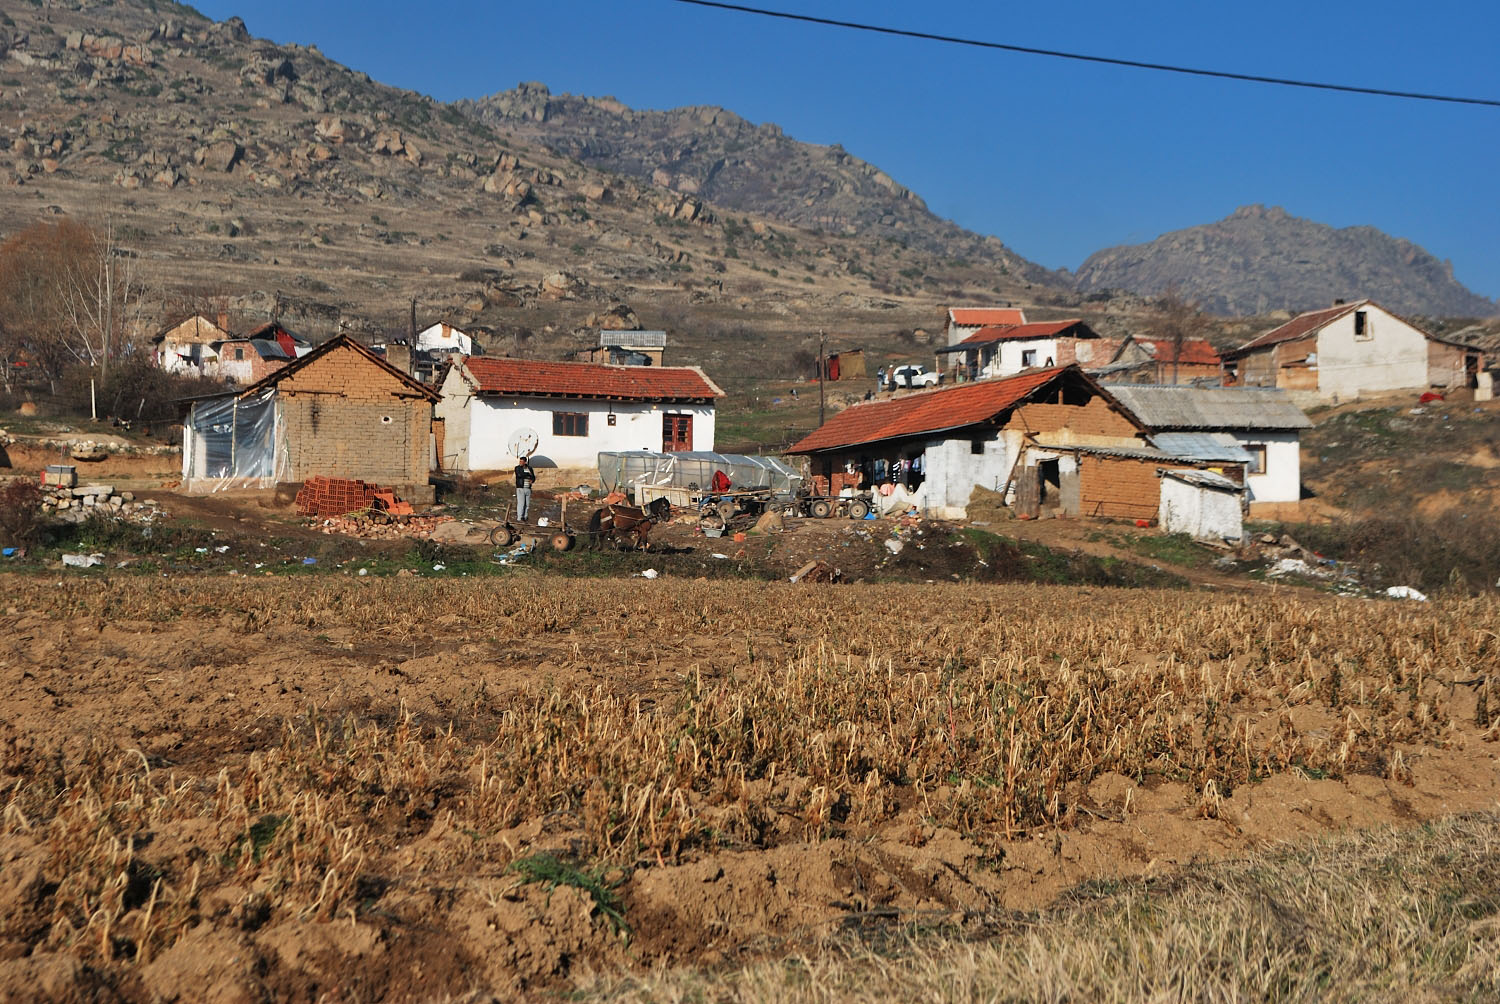 The last houses in the Roma district, at the far end of the town, are surrounded by fields